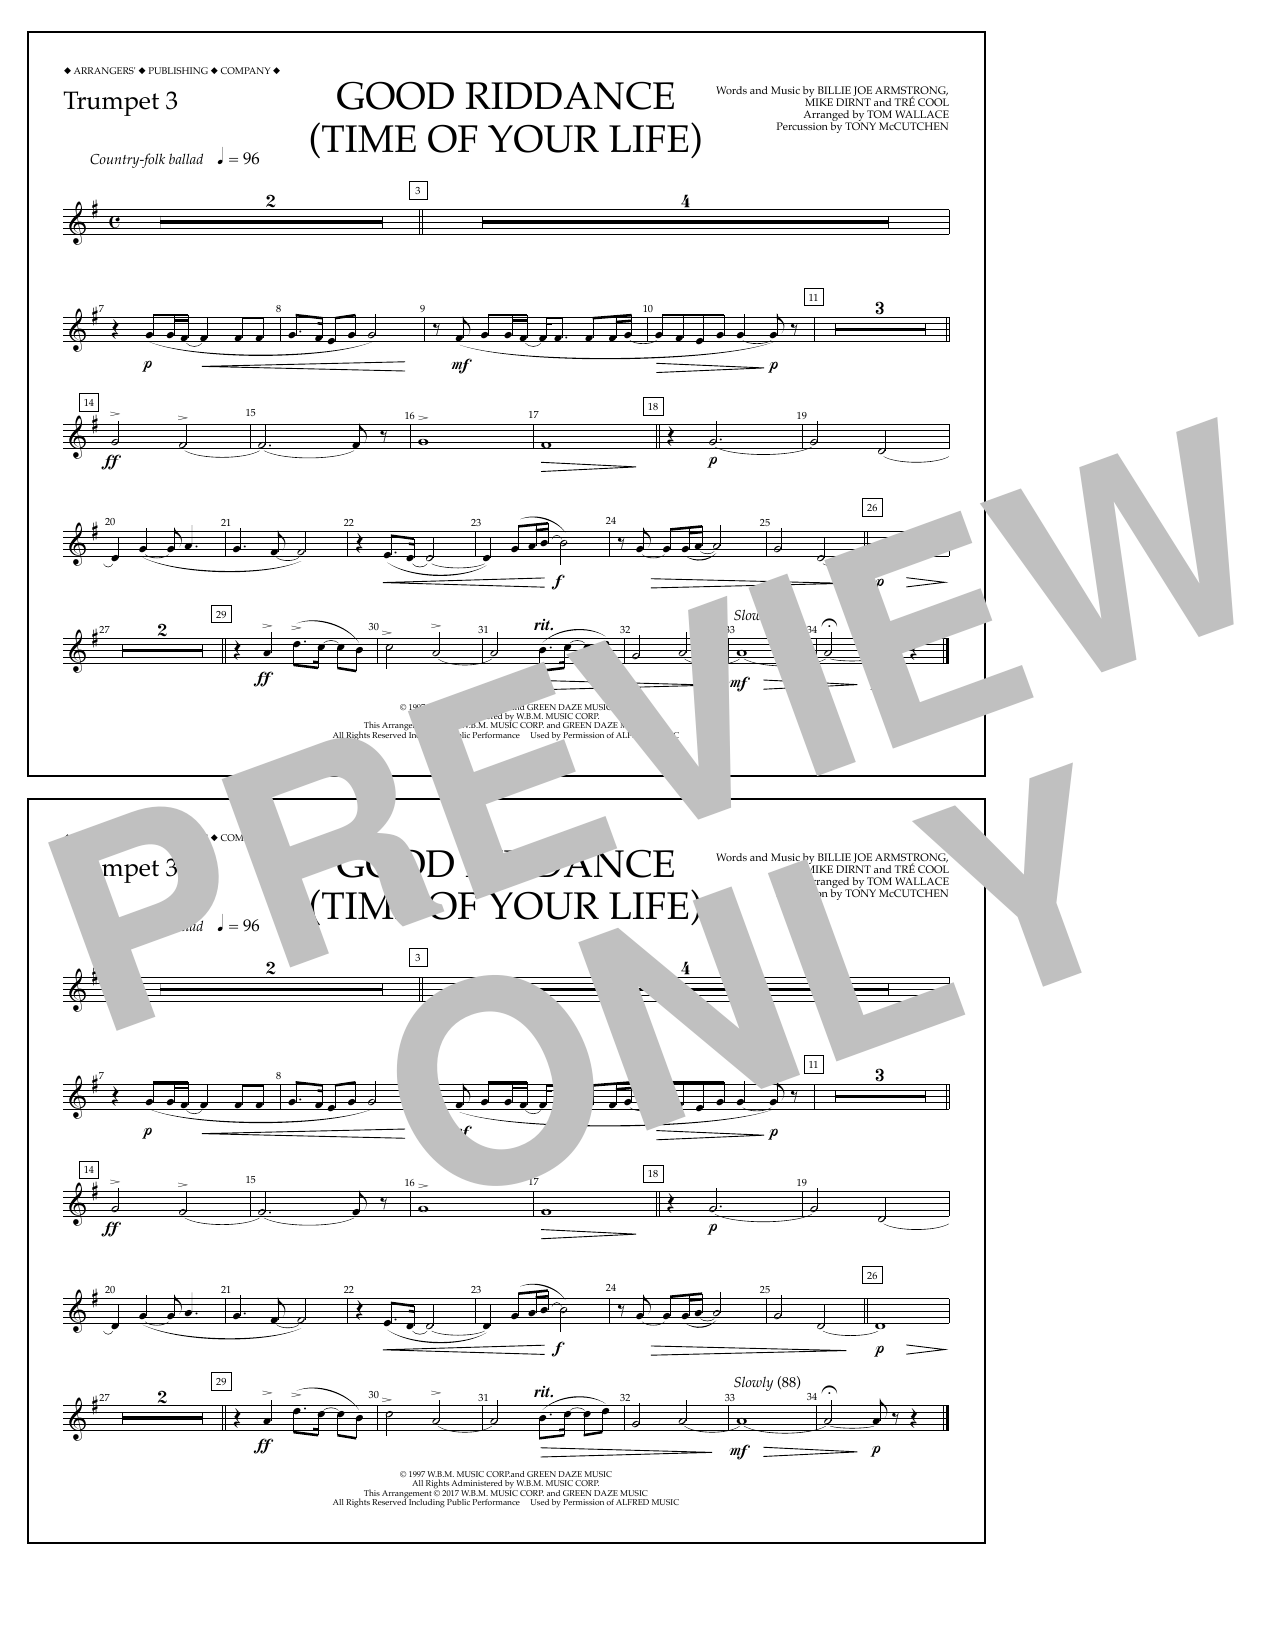 Good Riddance (Time of Your Life) - Trumpet 3 Sheet Music